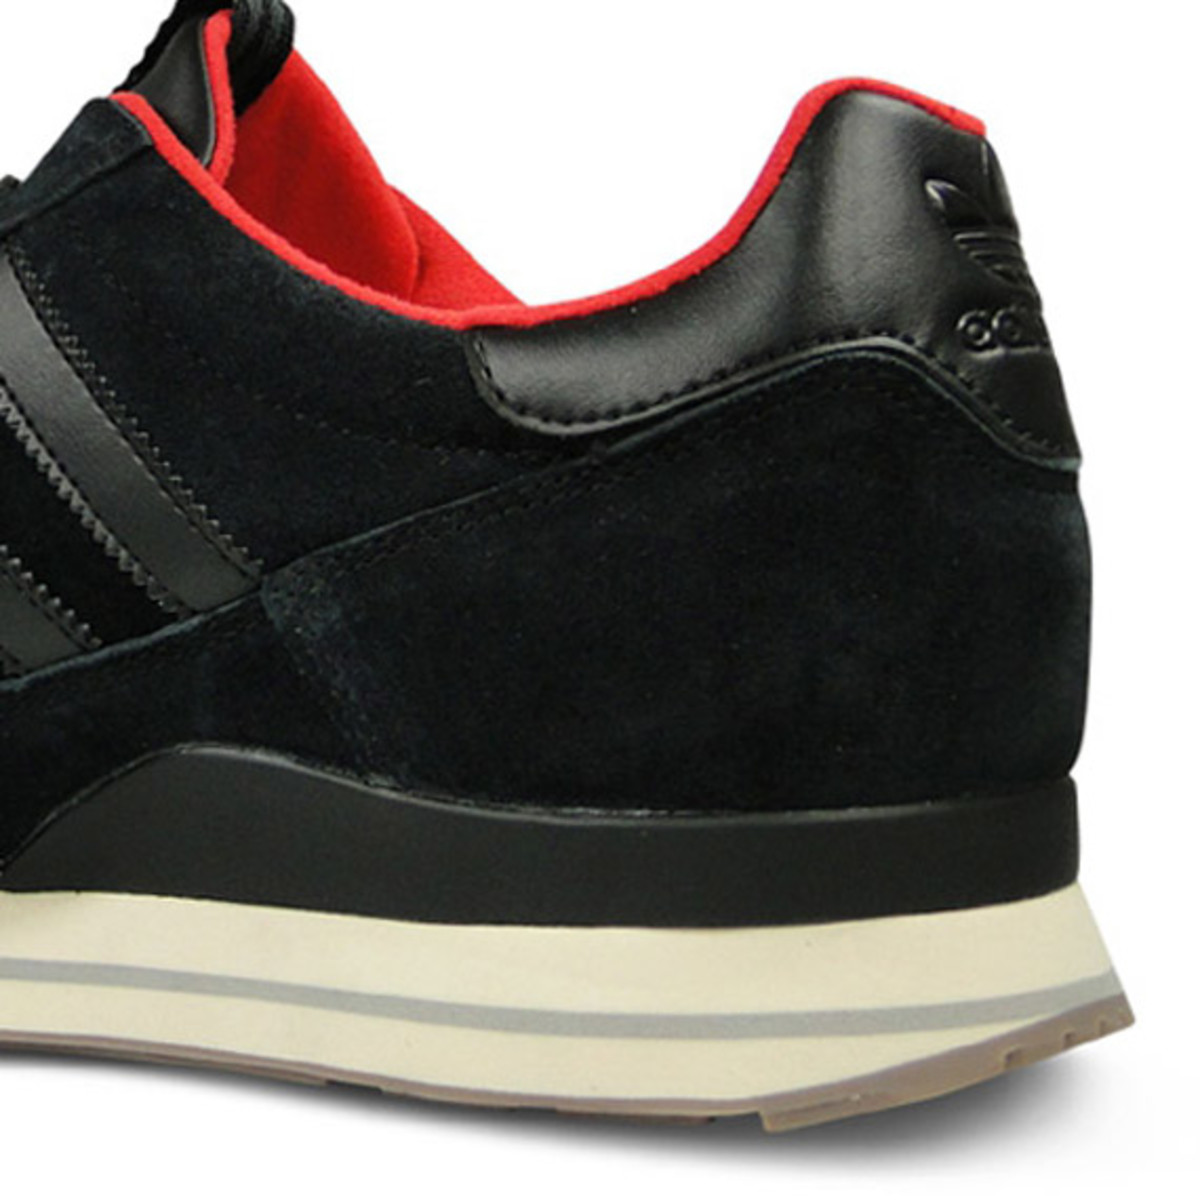 ZX500 Leather Black Off White 1